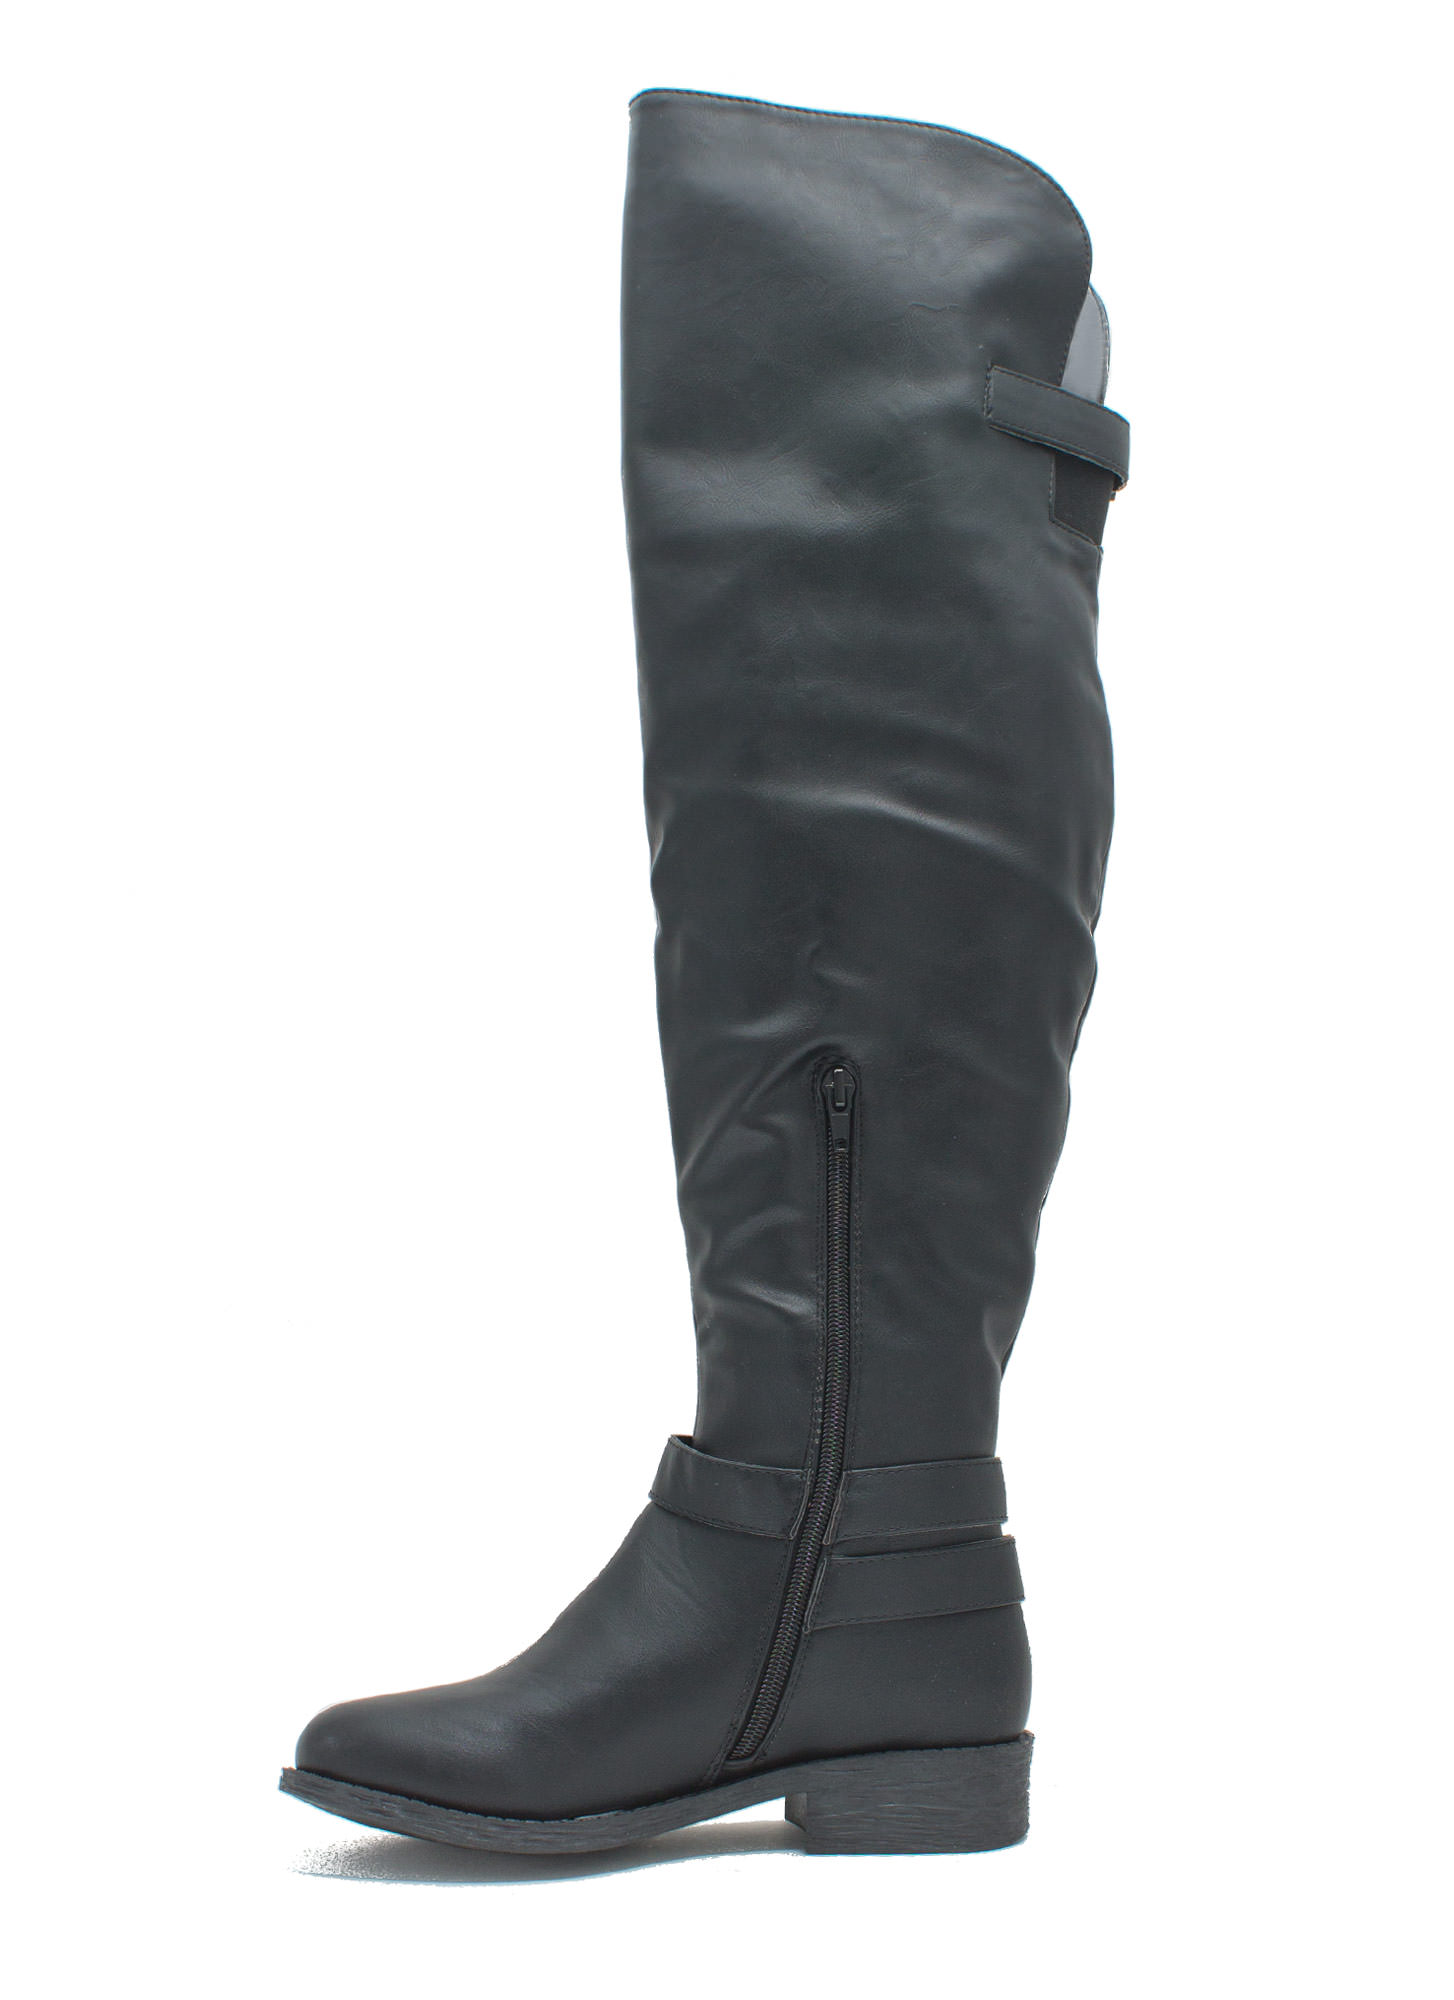 Quest 4 Chic Over-The-Knee Boots BLACK